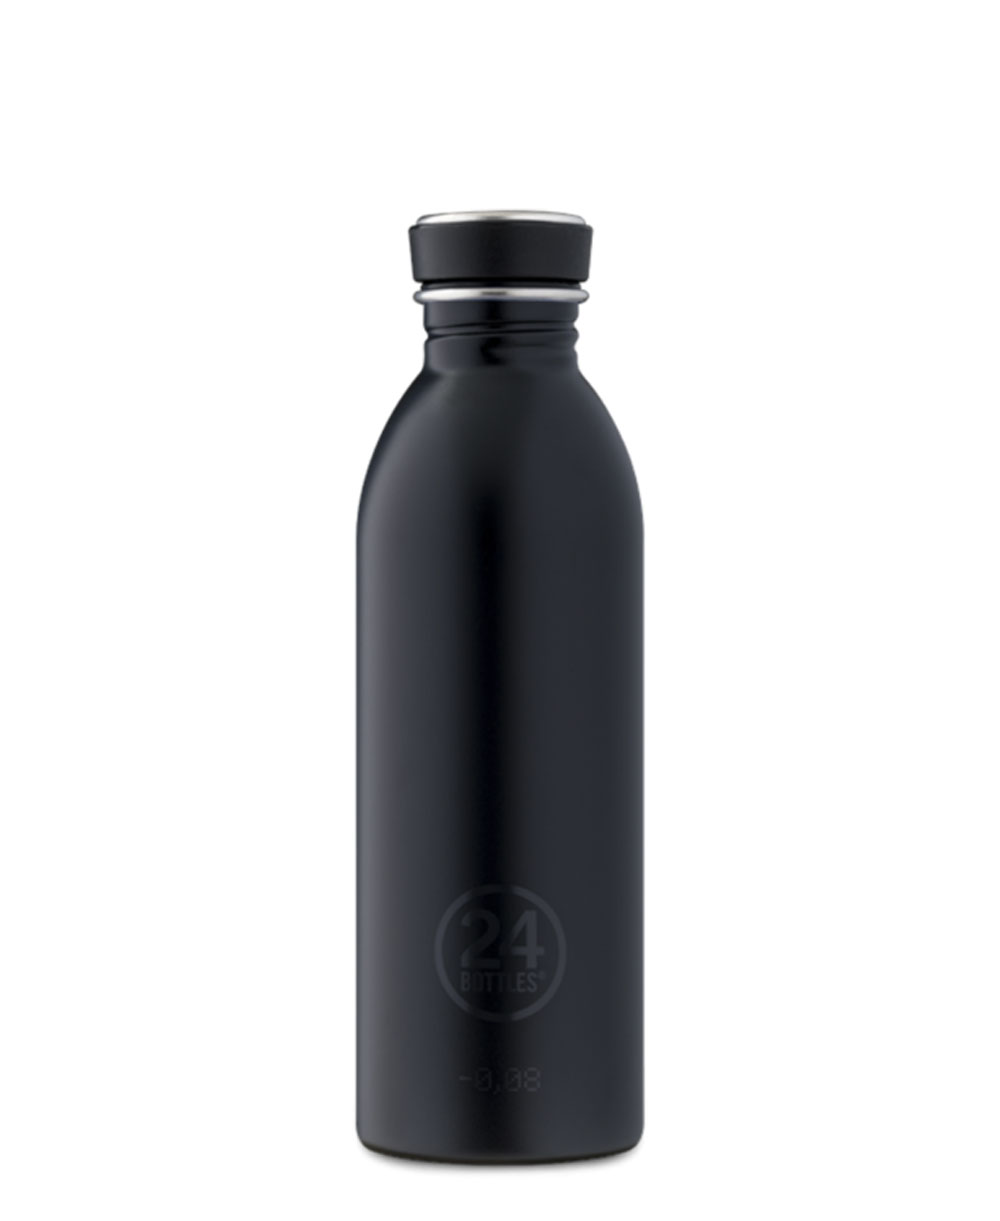 Urban 500ml Water Bottle Tuxedo Black